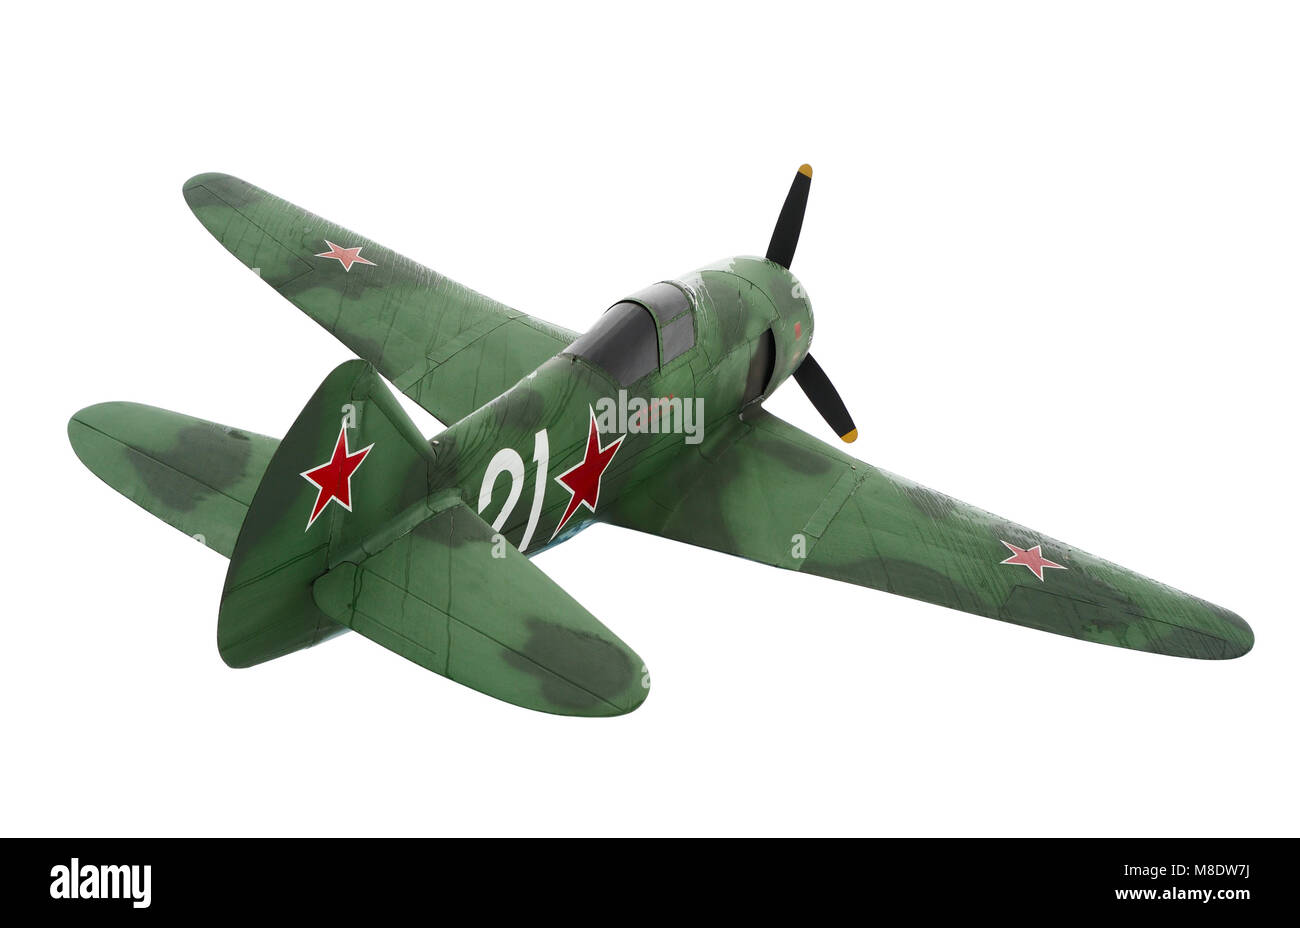 Old Soviet military aircraft LA-7 fighter aircraft of World War II Stock Photo